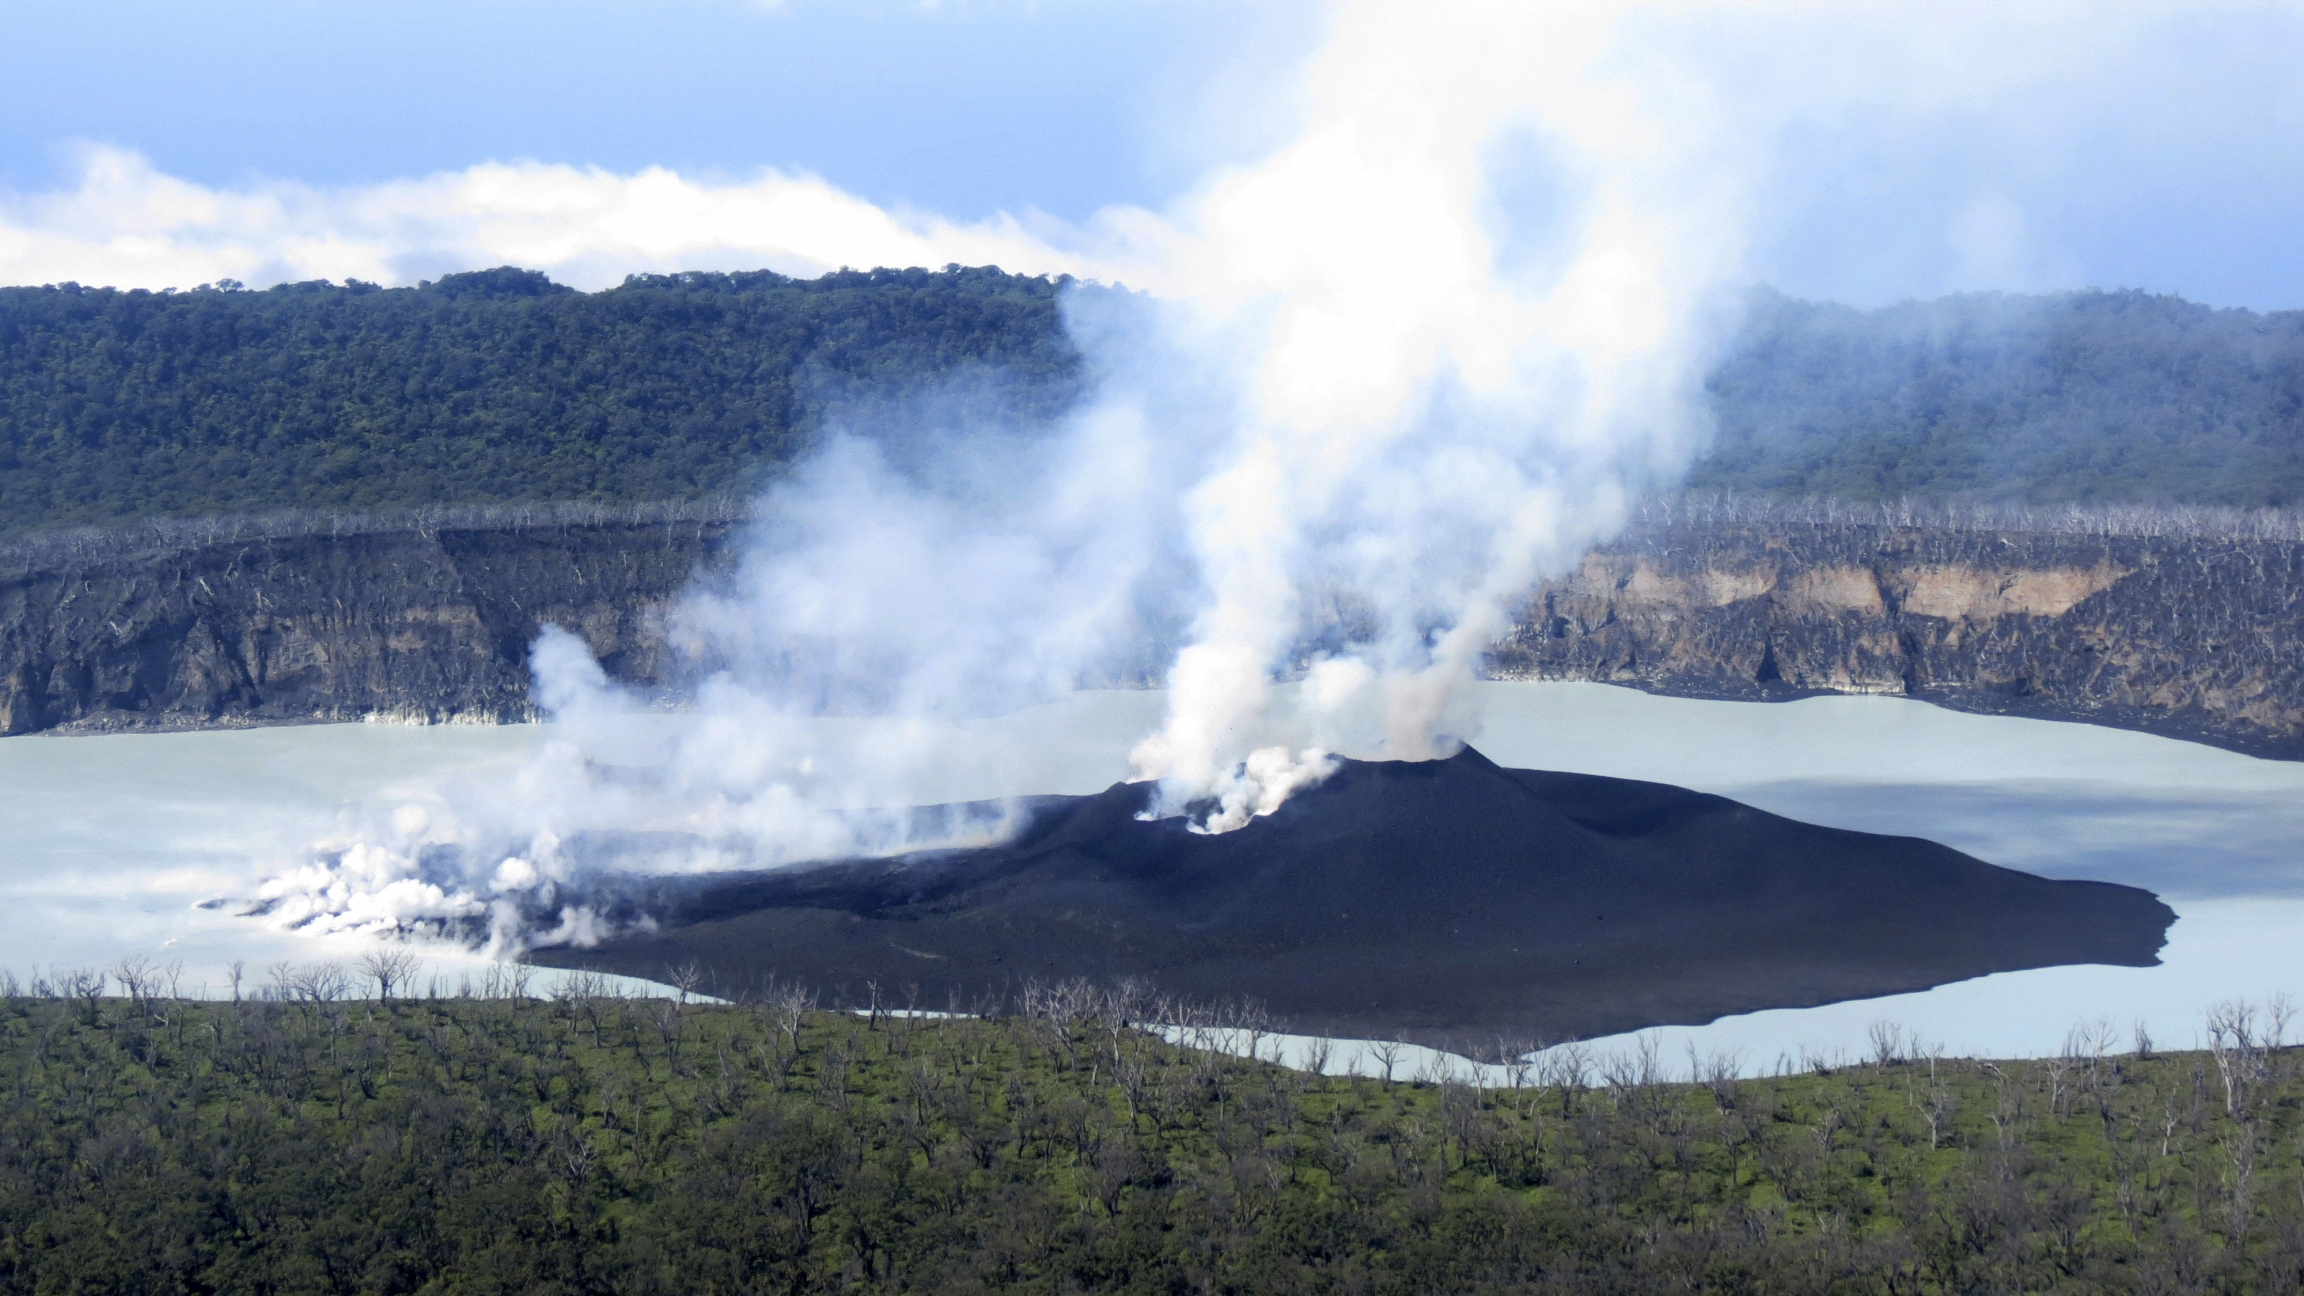 A dark volcano with smoke rising out of it surrounded by a body of water.